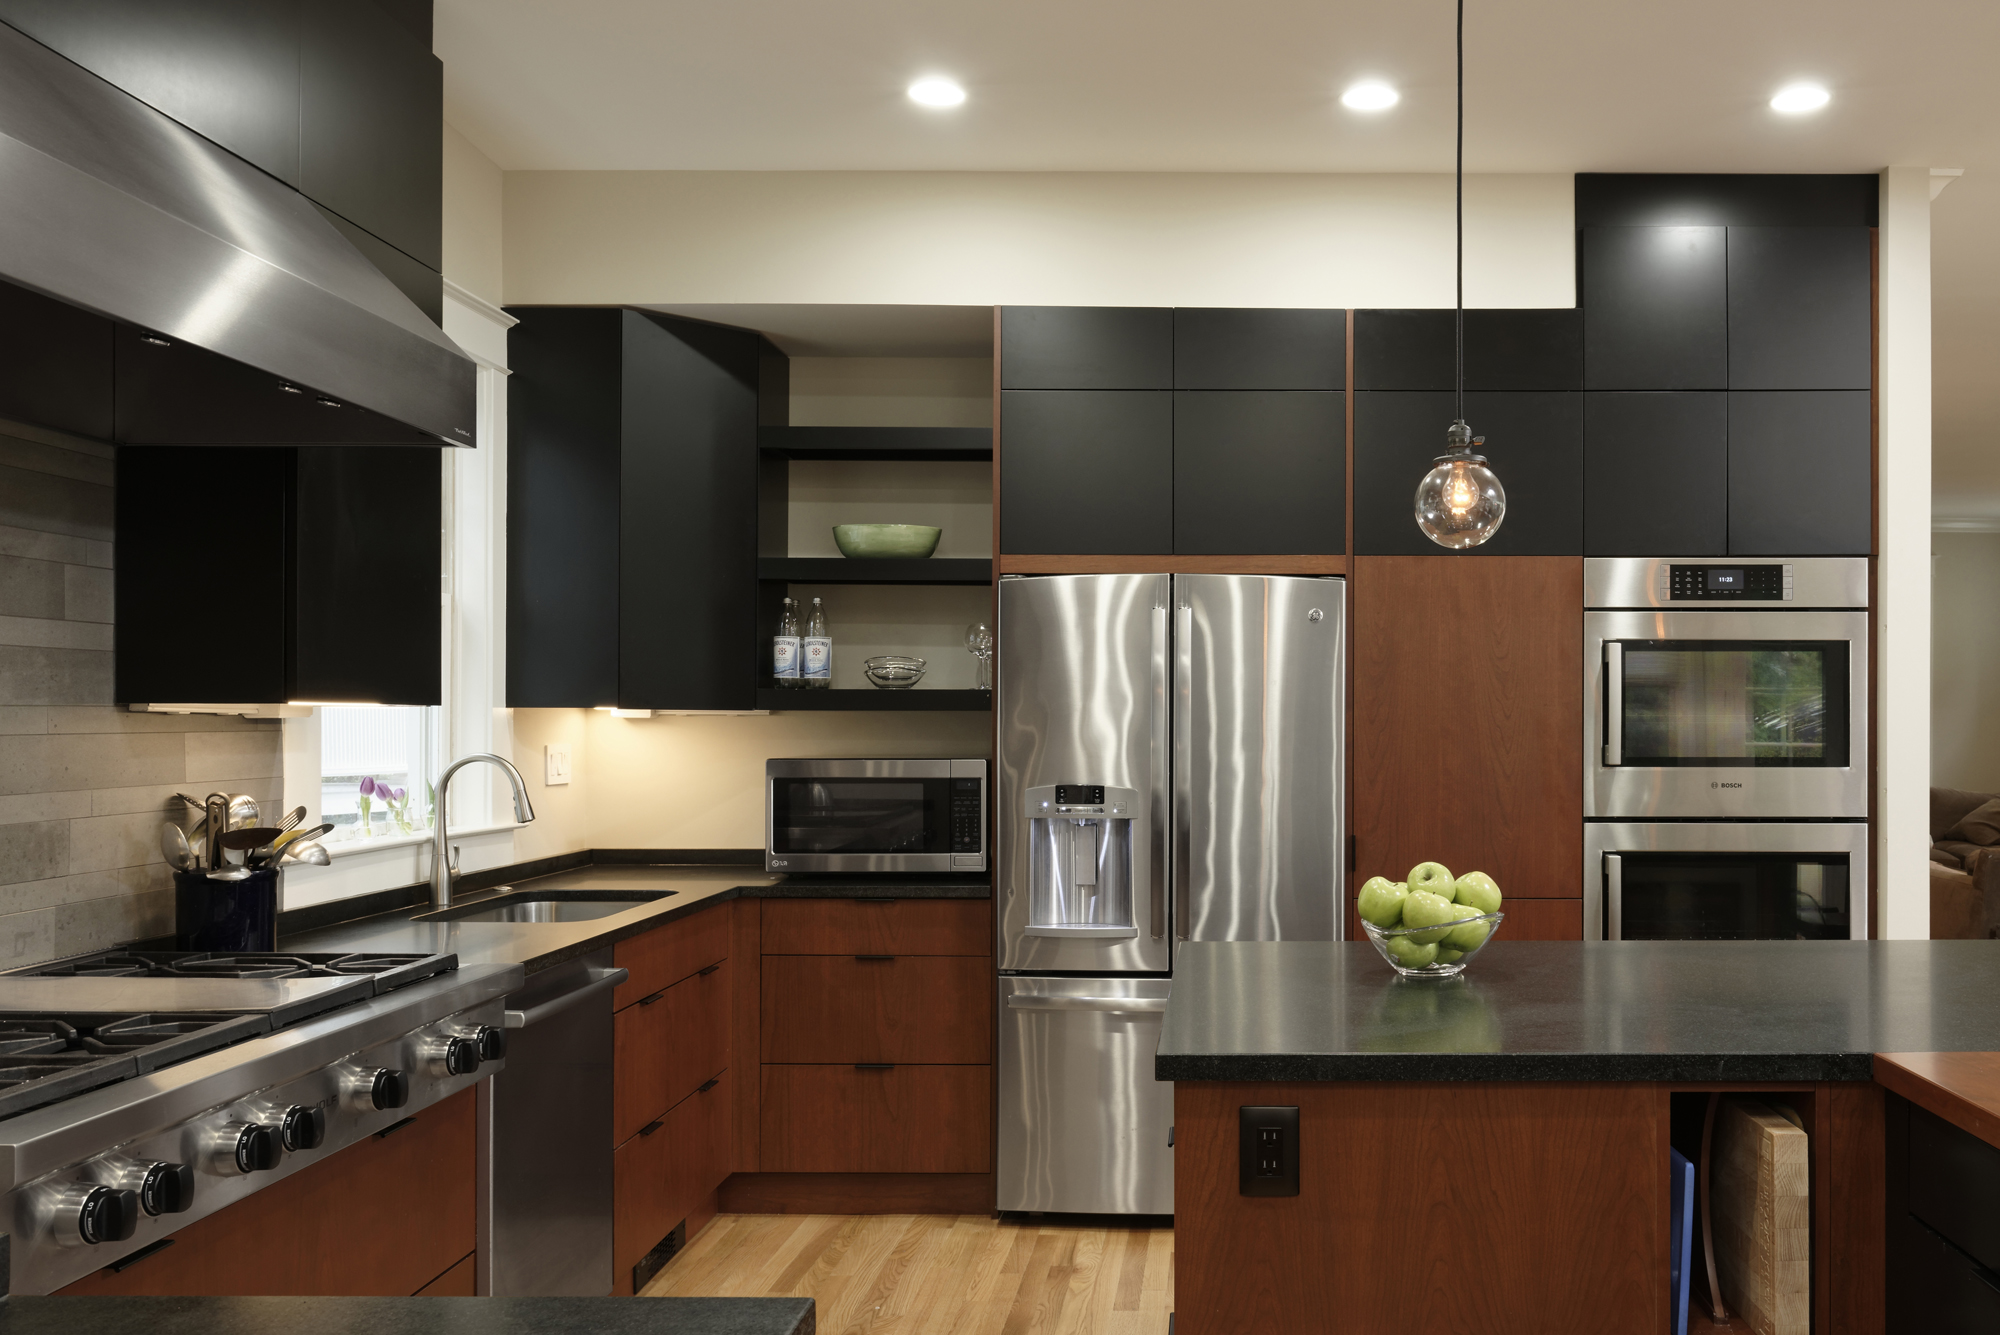 kitchen designers washington dc cleveland park dc kosher kitchen renovation bowa 322